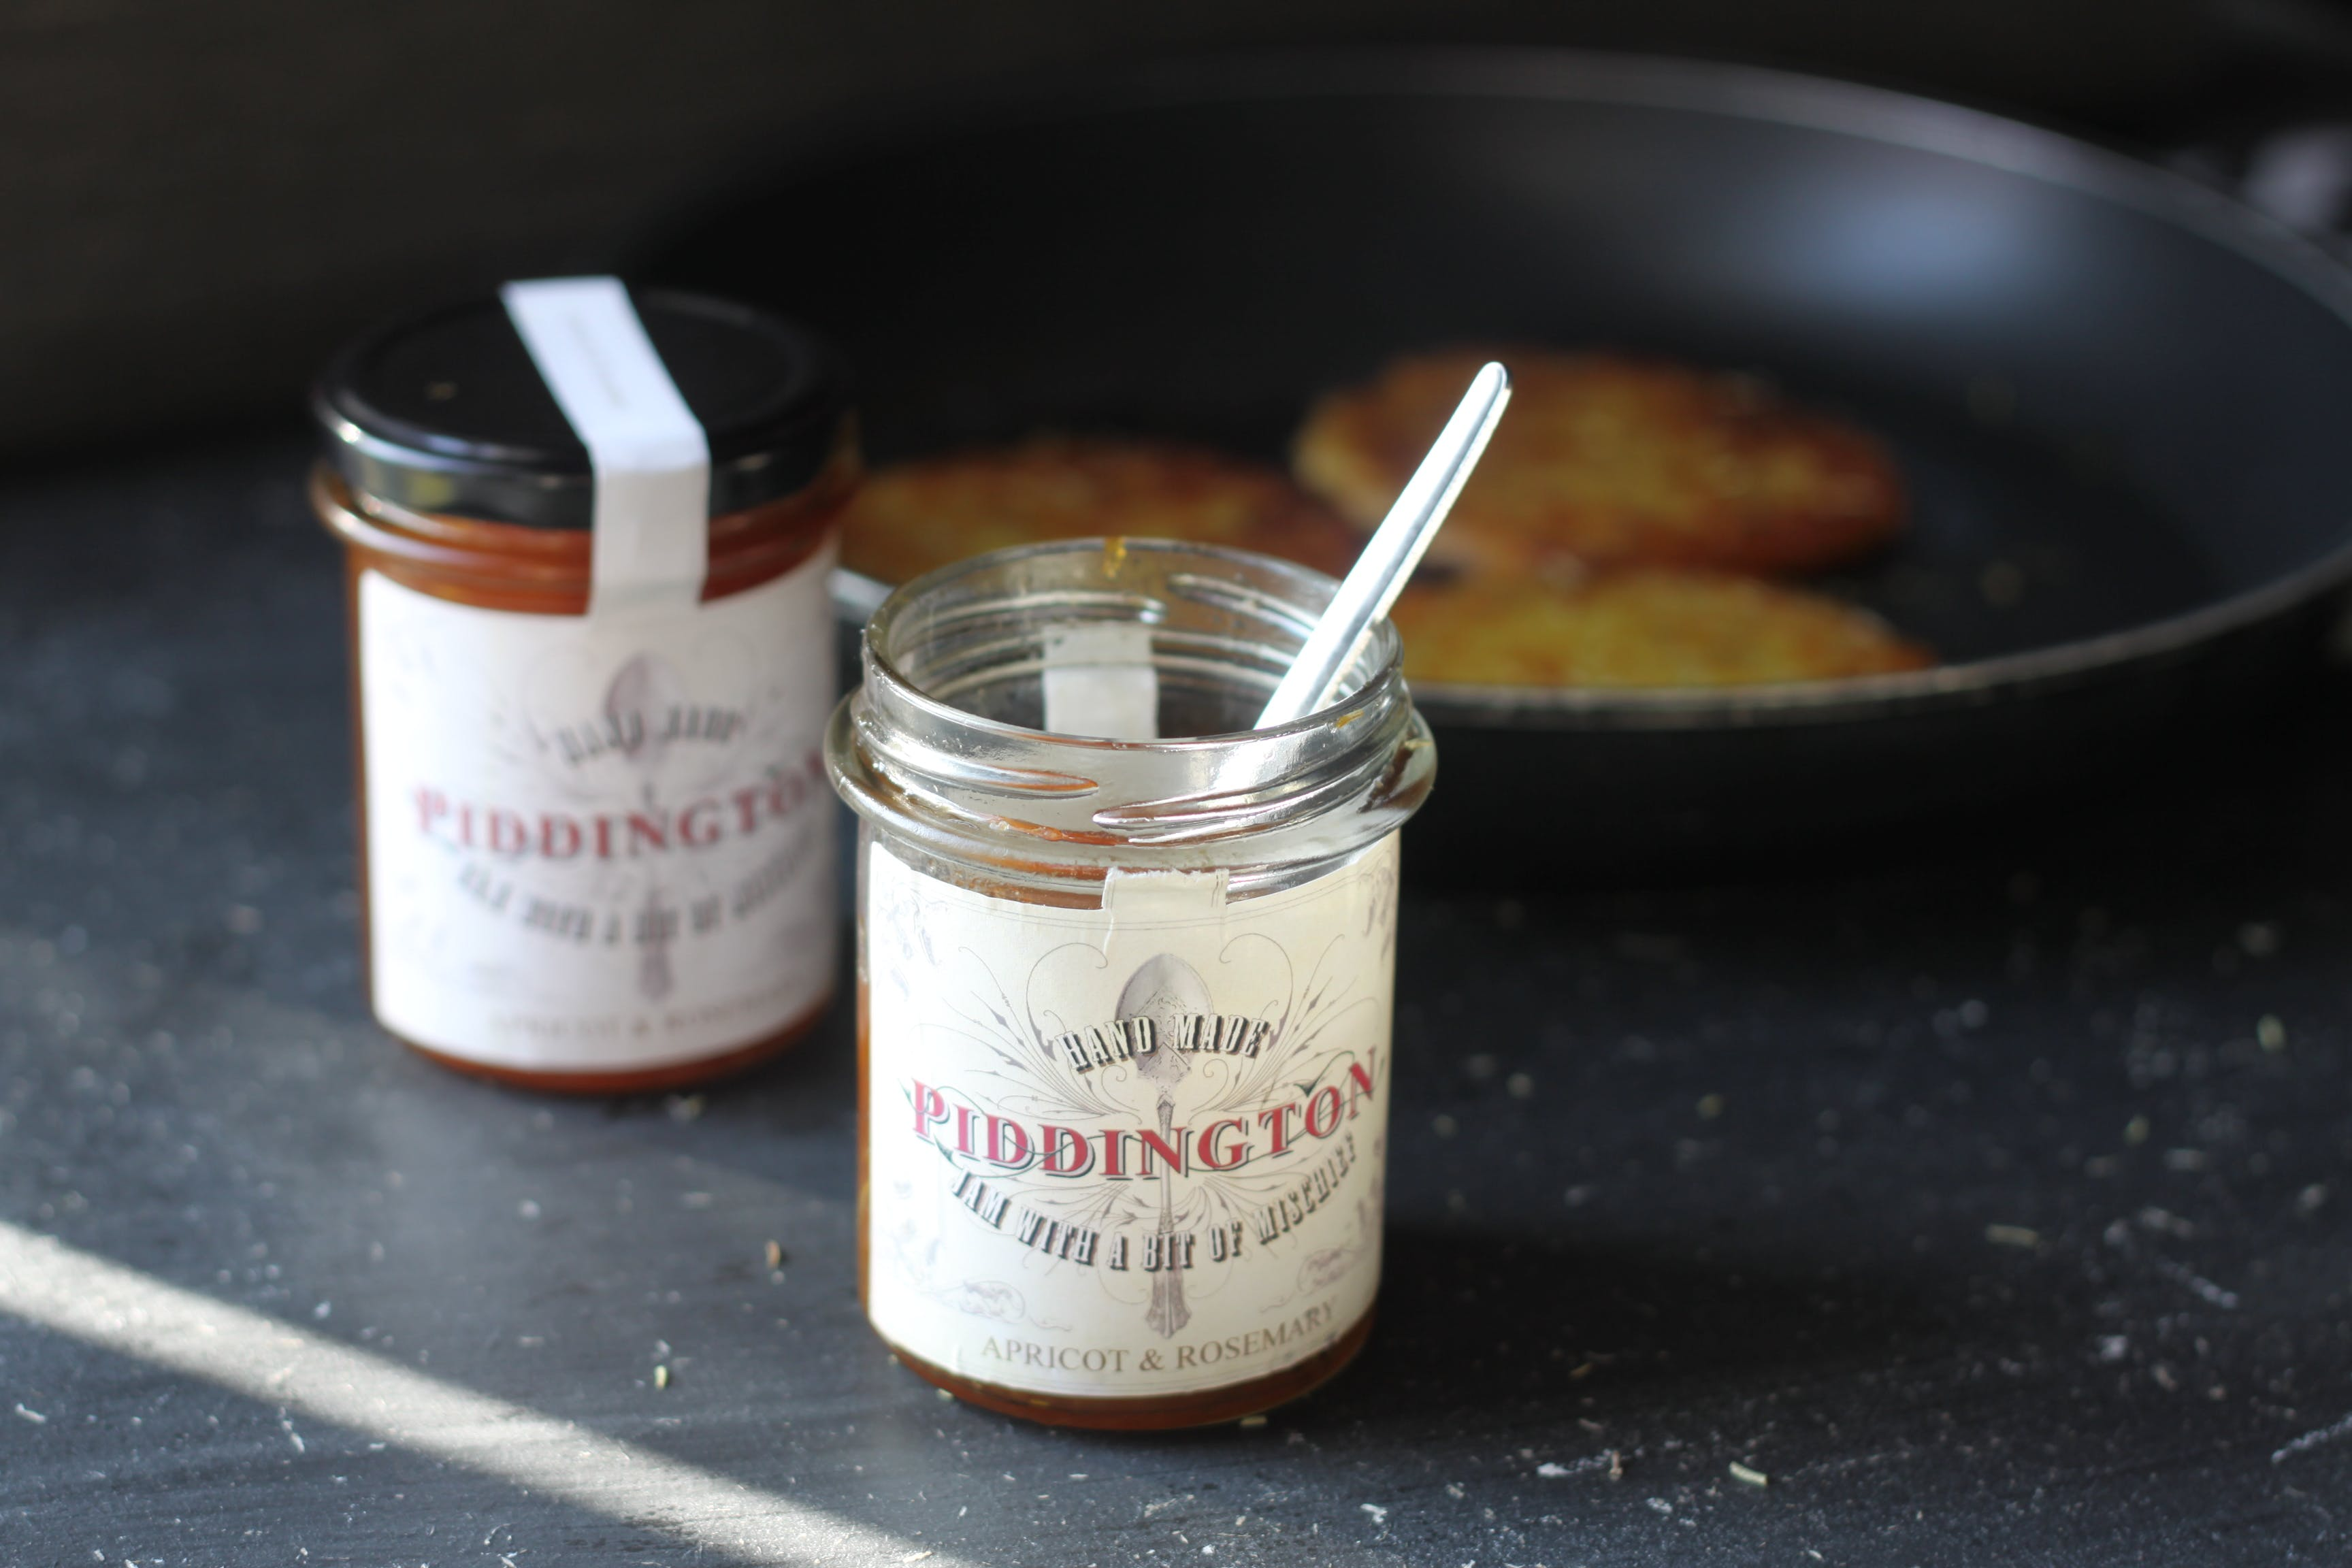 Piddington Jam